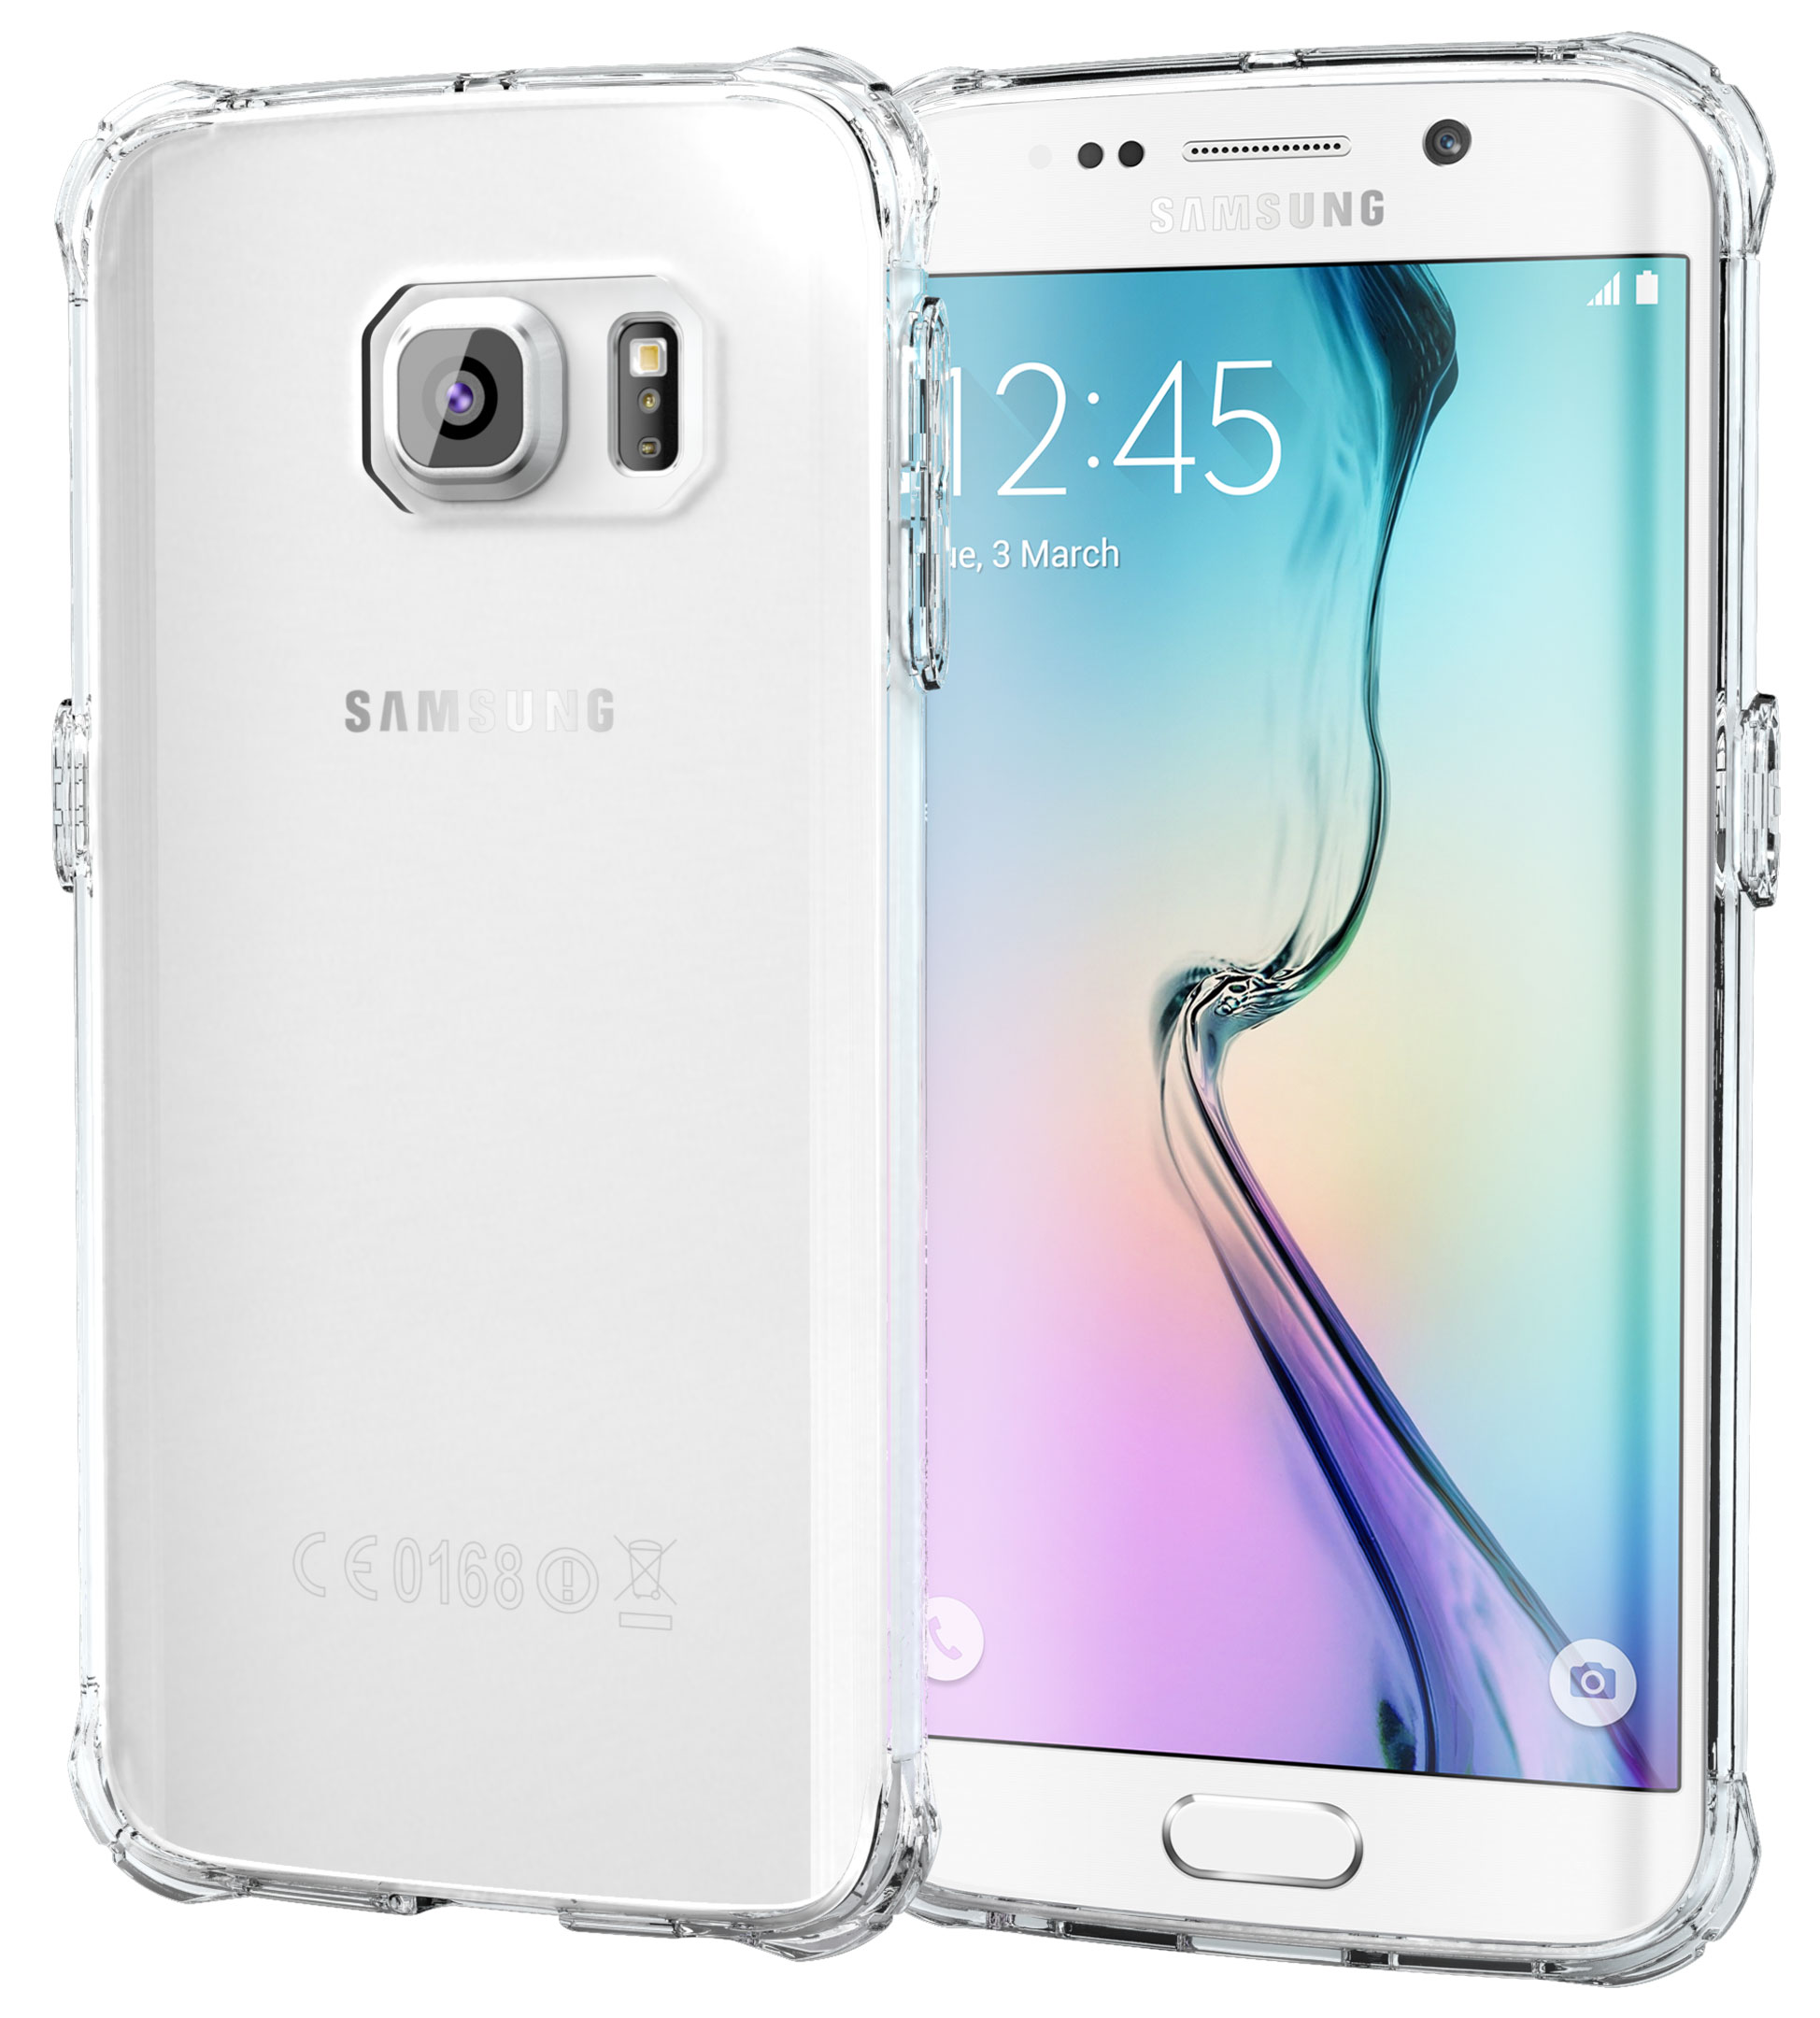 Galaxy S6 Edge Case - roocase [PLEXIS IMPAX] Clear Back Design [Slim-Fit] Protective Hybrid PC / TPU Case Cover for Samsung Galaxy S6 Edge (2015),